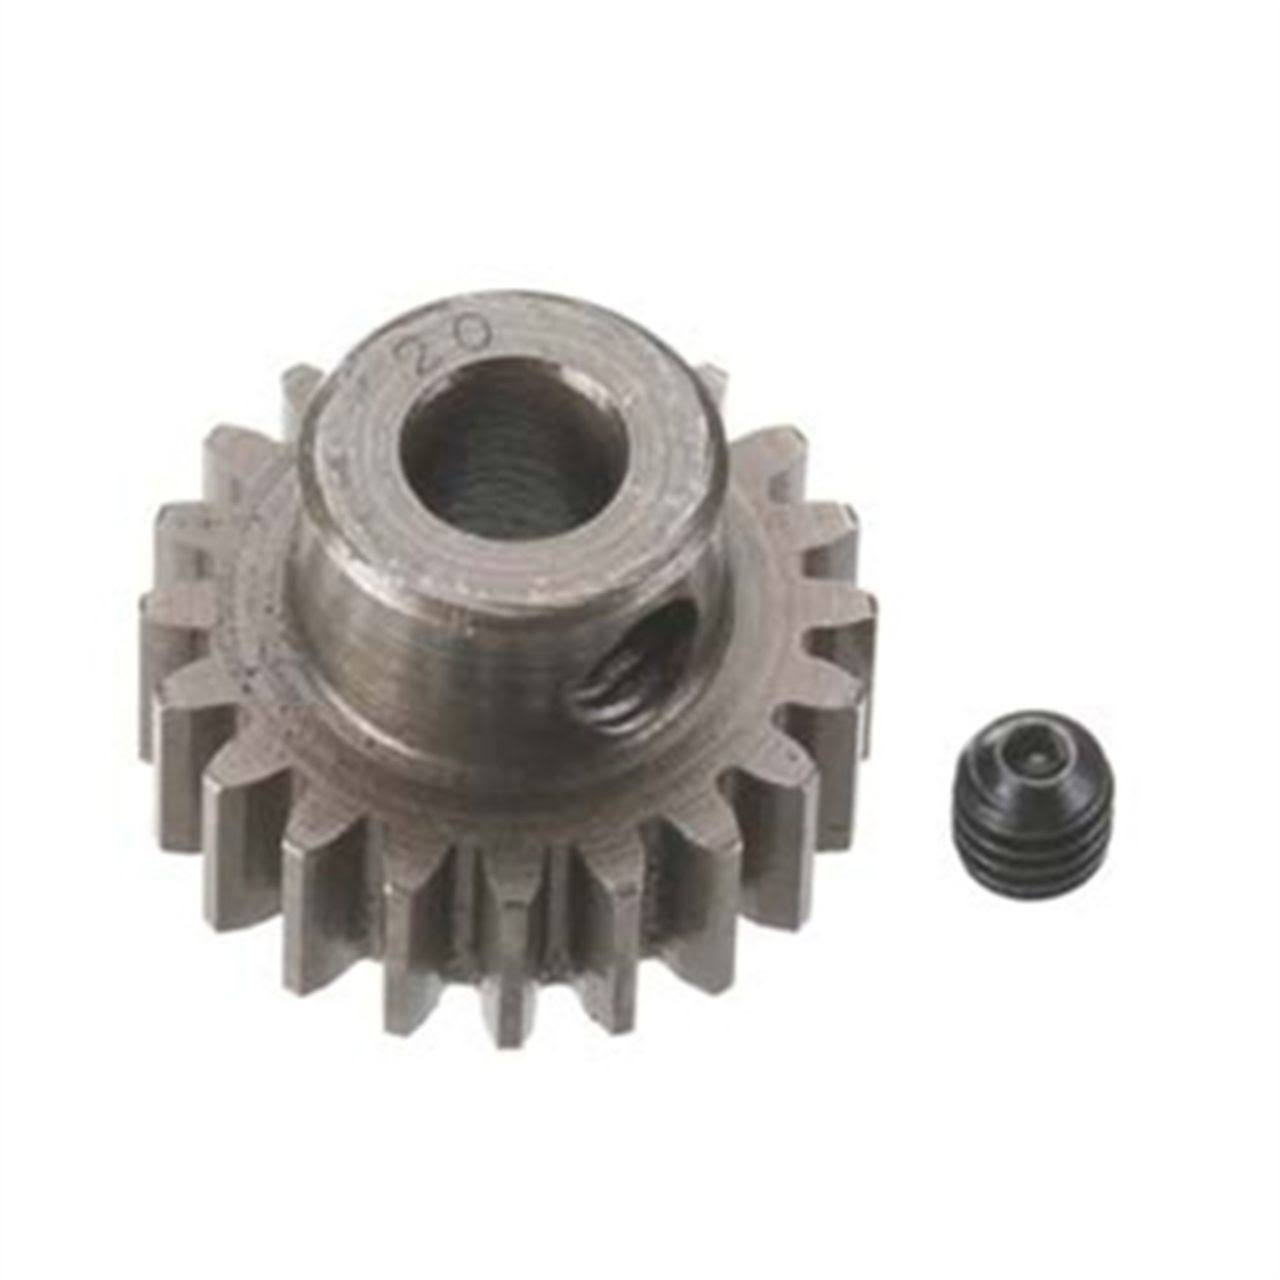 Robinson Racing 8720 Pinion Gear - Xtra Hard, 5mm, 20T